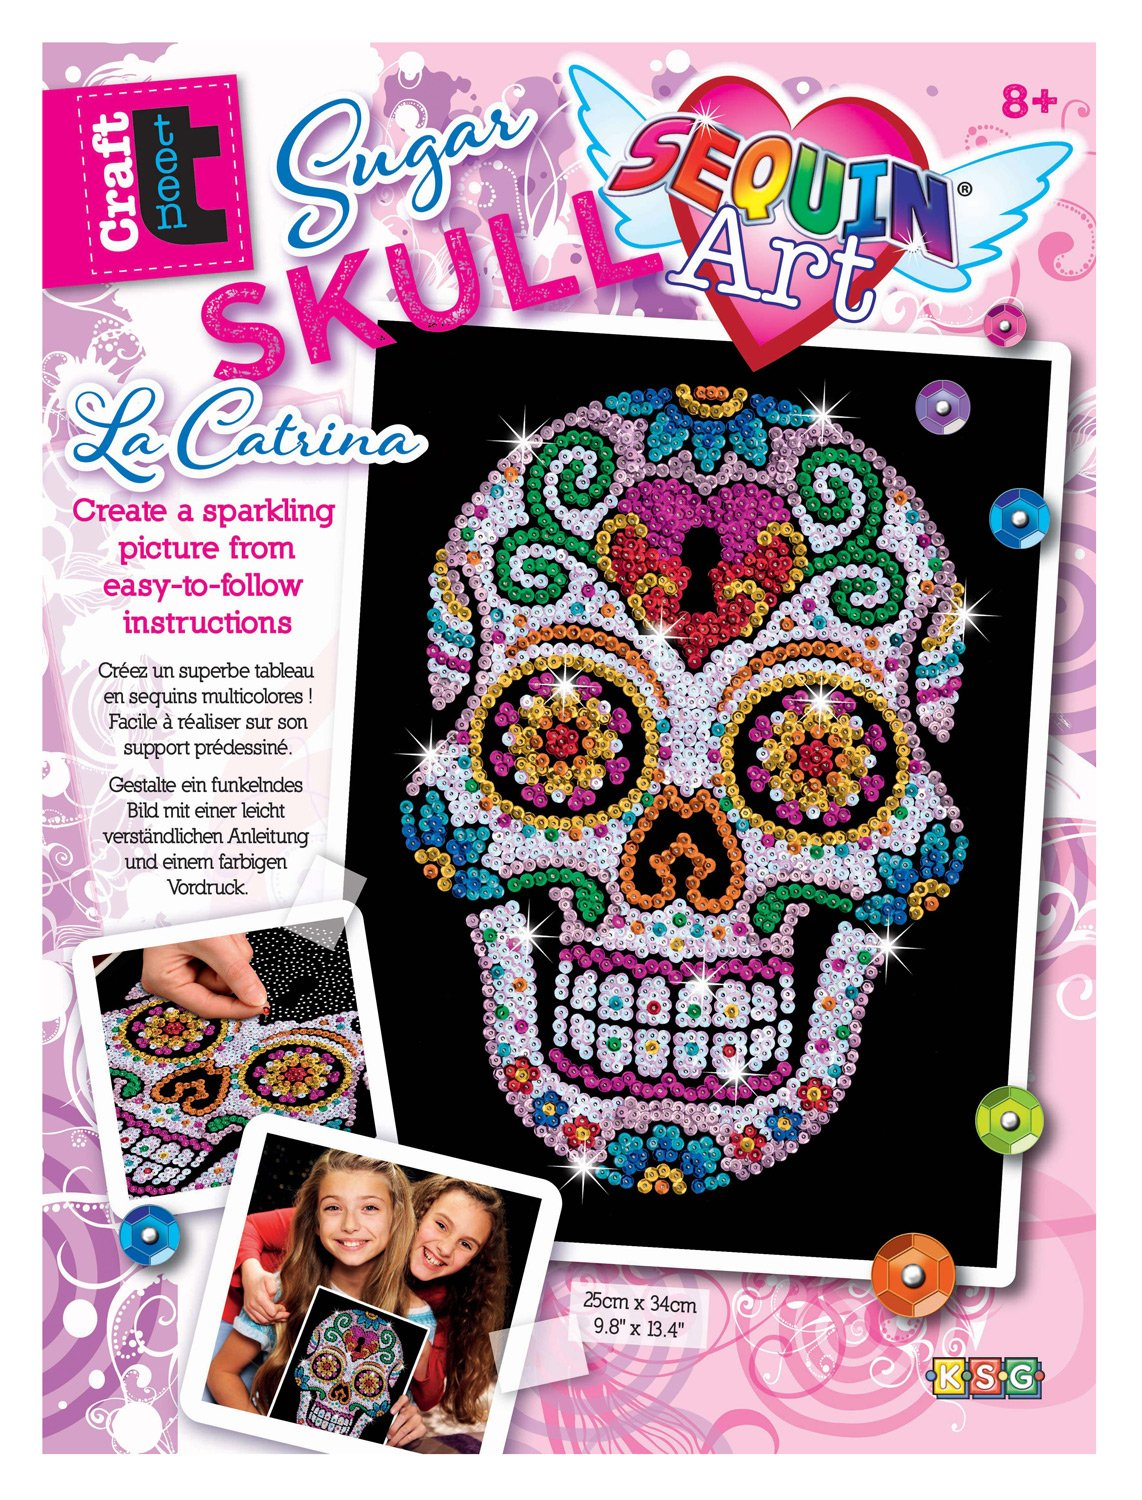 Sequin Art Sugar Skull Sparkling Arts and Crafts Picture Kit; Creative Crafts for Adults and Kids